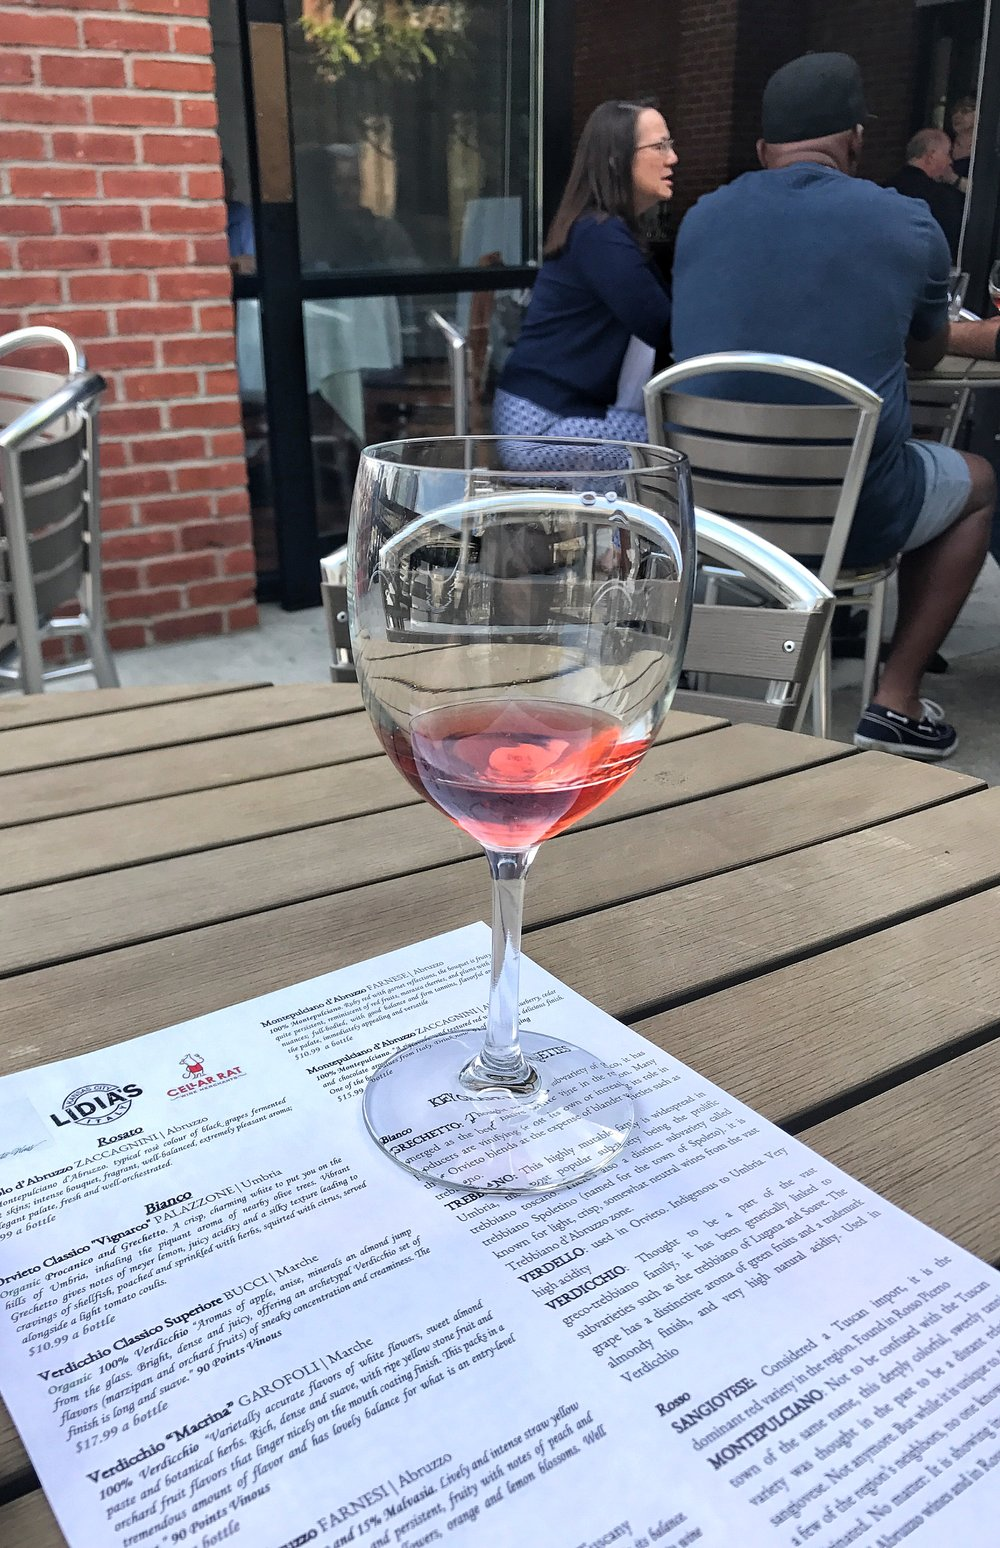 Rumor has it that there will be an all rosé wine tasting this summer! #roséallday